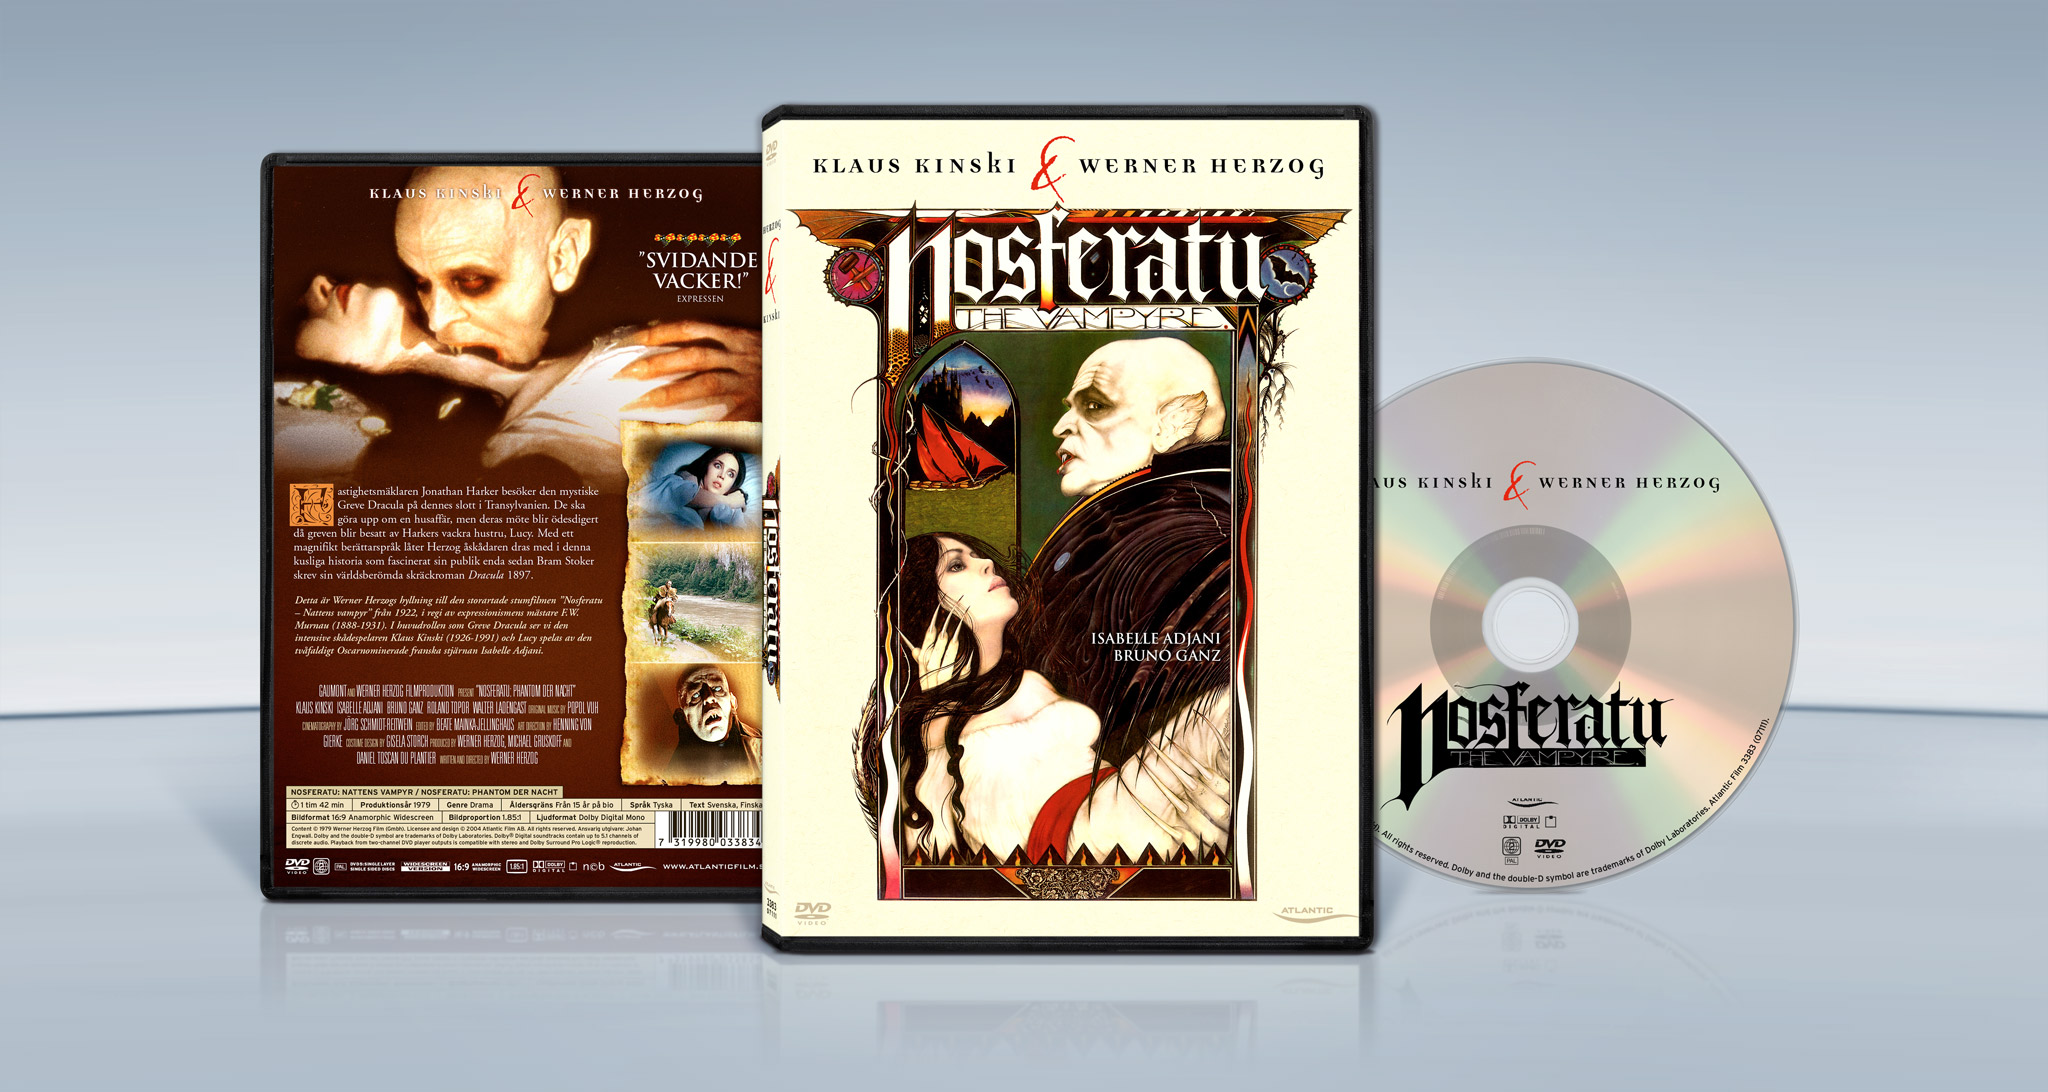 Nosferatu – The Vampyre (1979) Werner Herzog dvd cover packshot